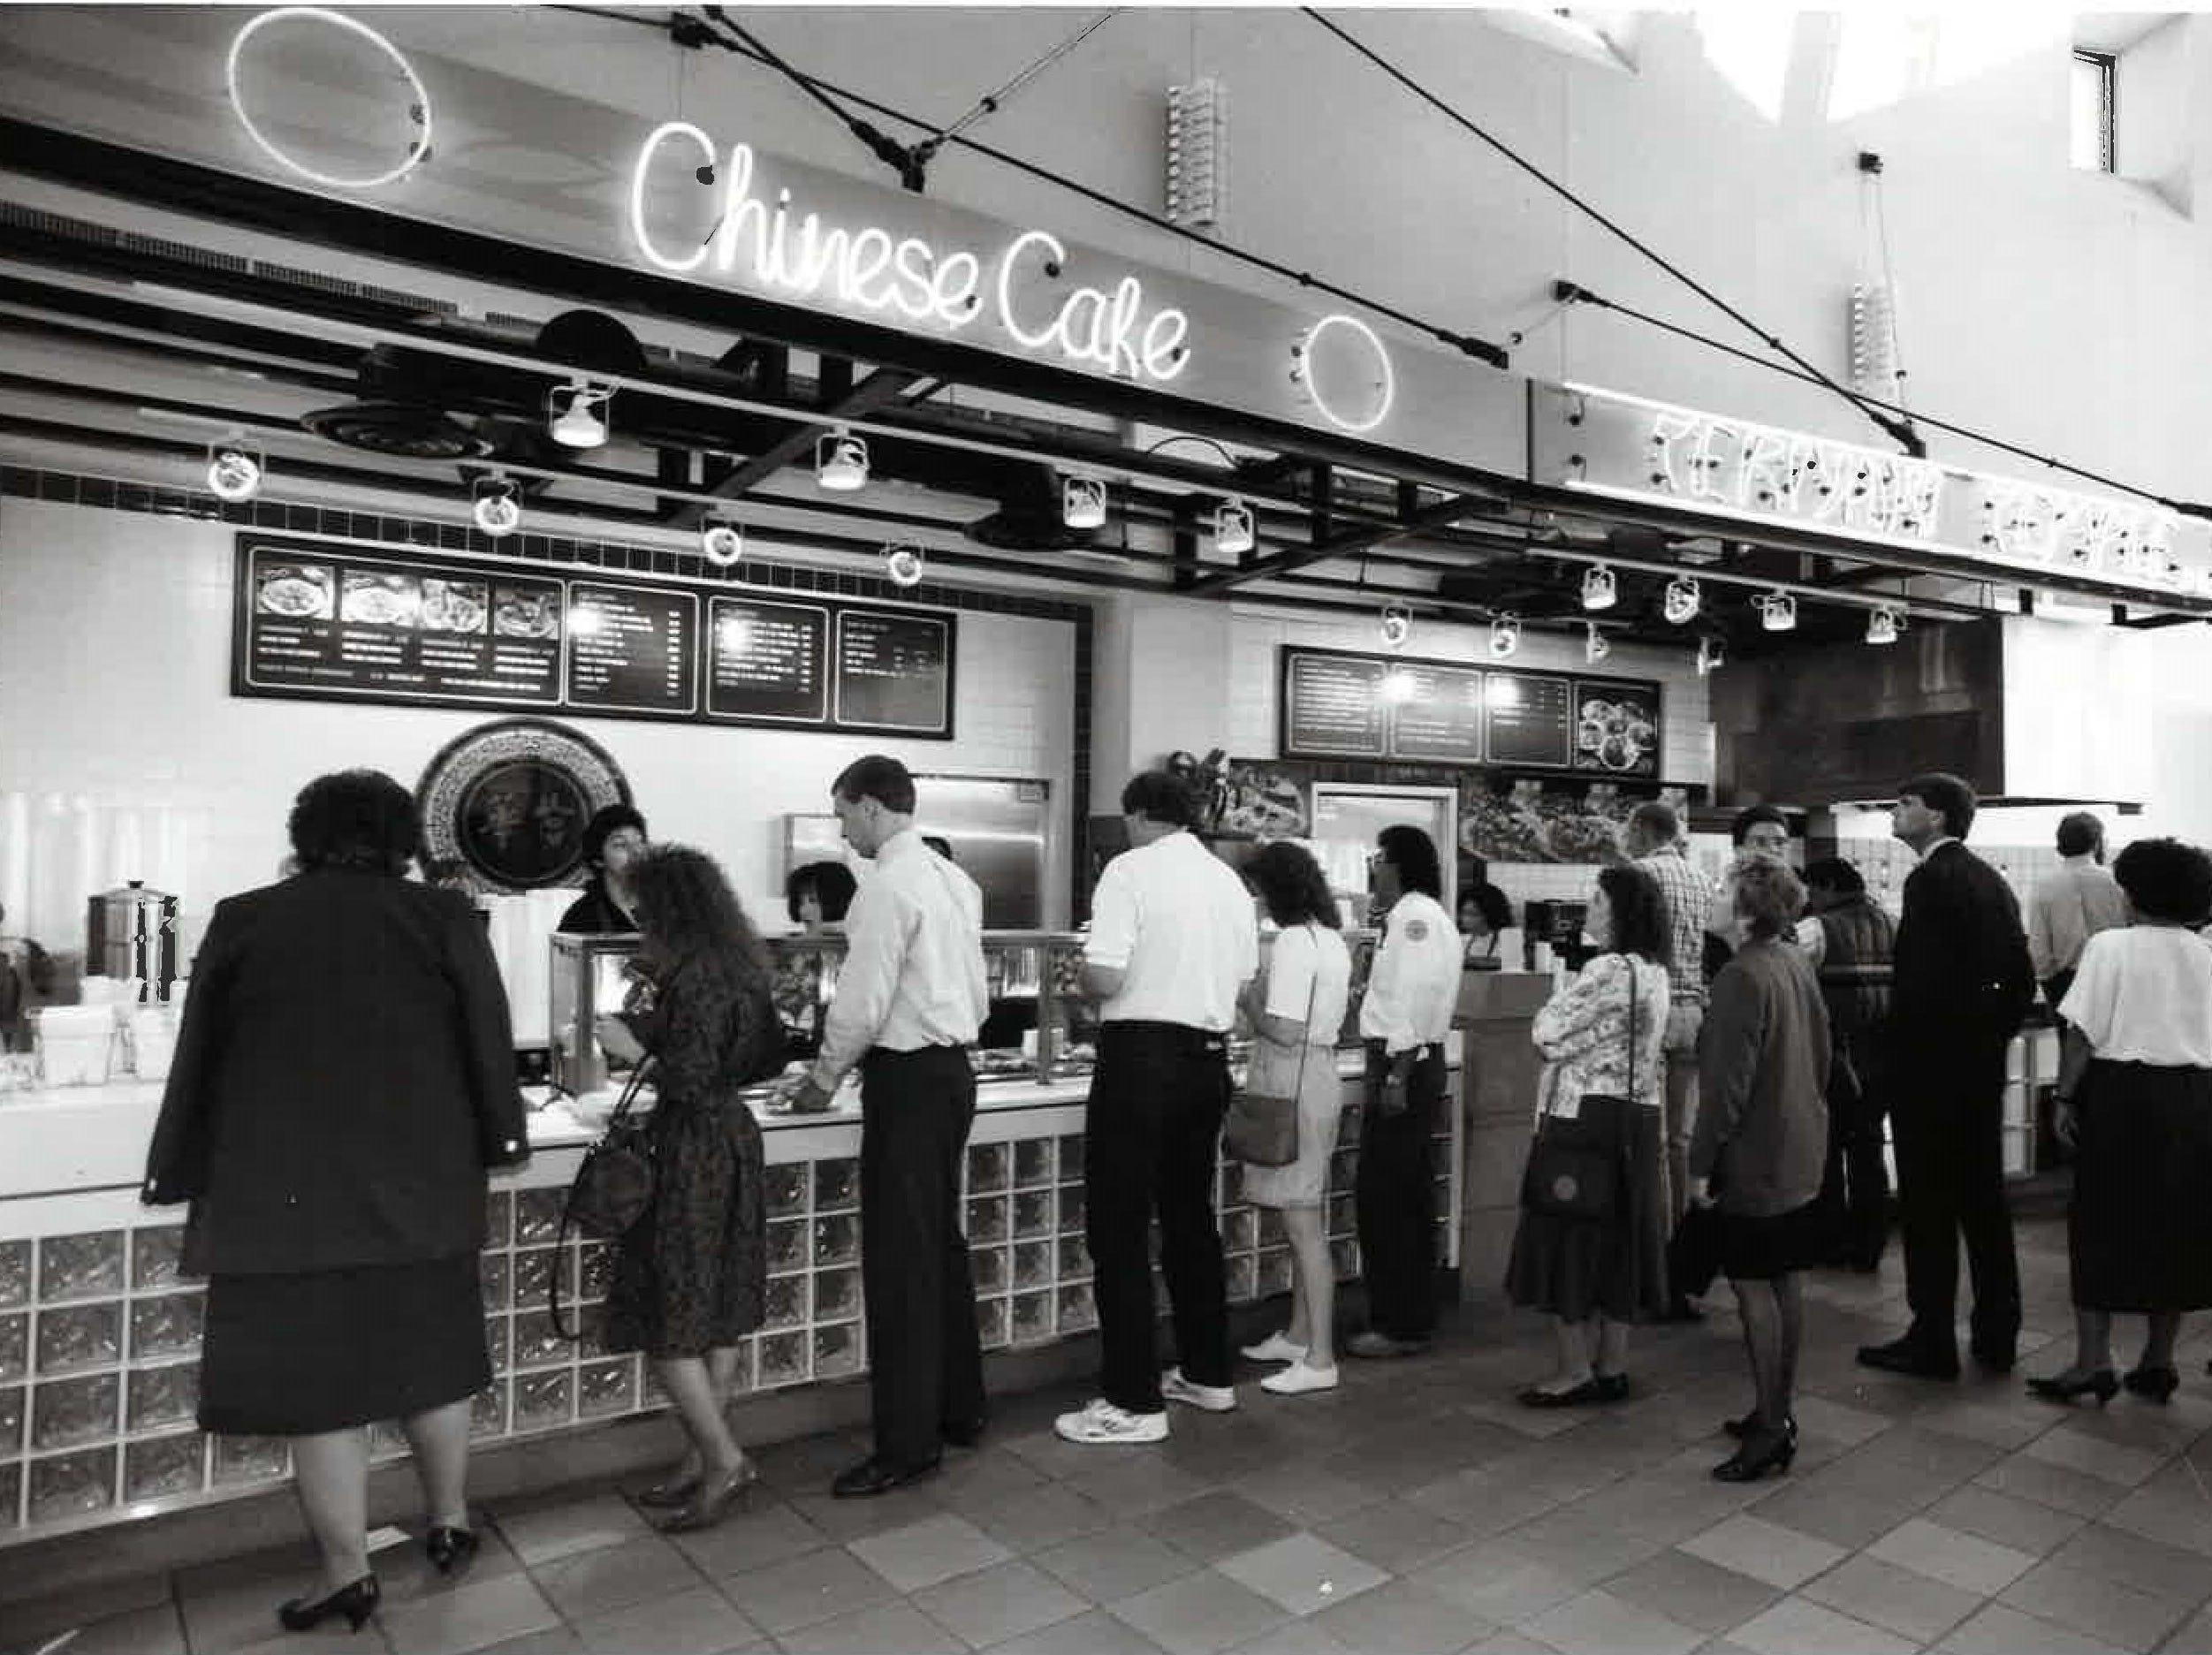 The food court at the Arizona Center in 1991.